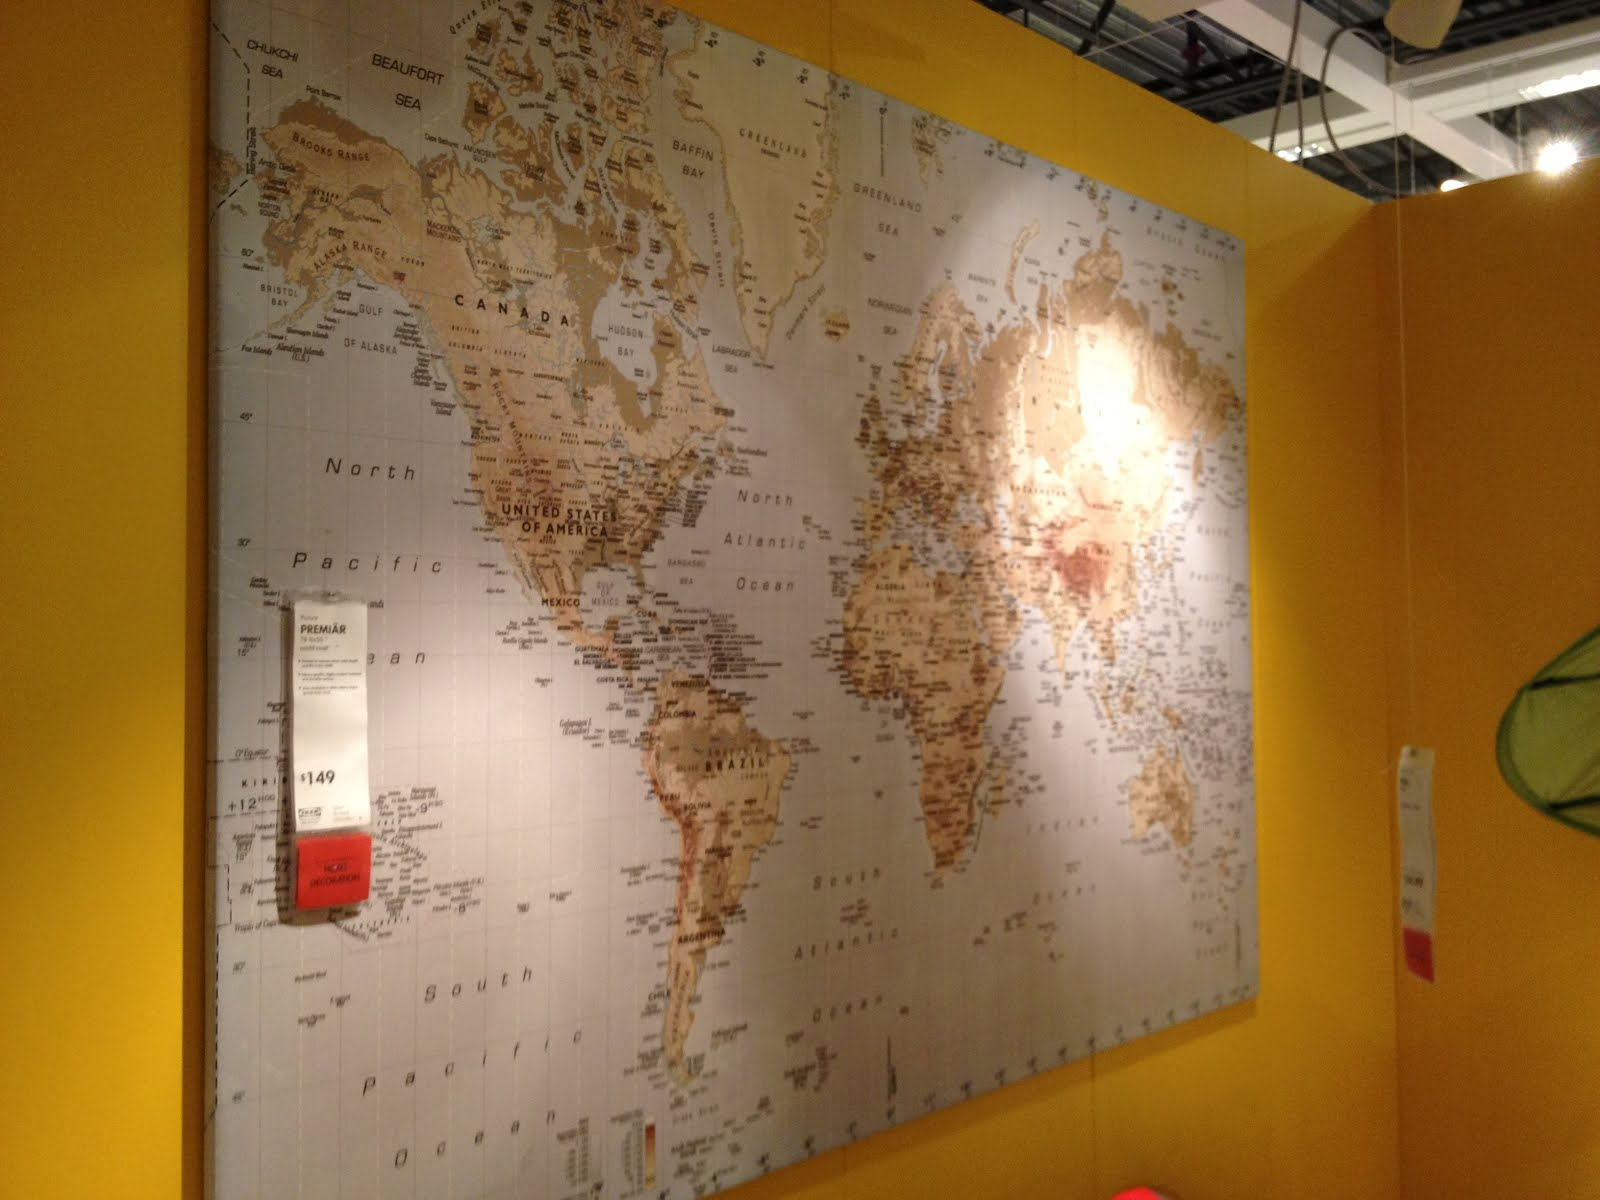 Map of the world ikea map of the world ikea eivor leva twin duvet cover and pillowcase 3999 gumiabroncs Gallery